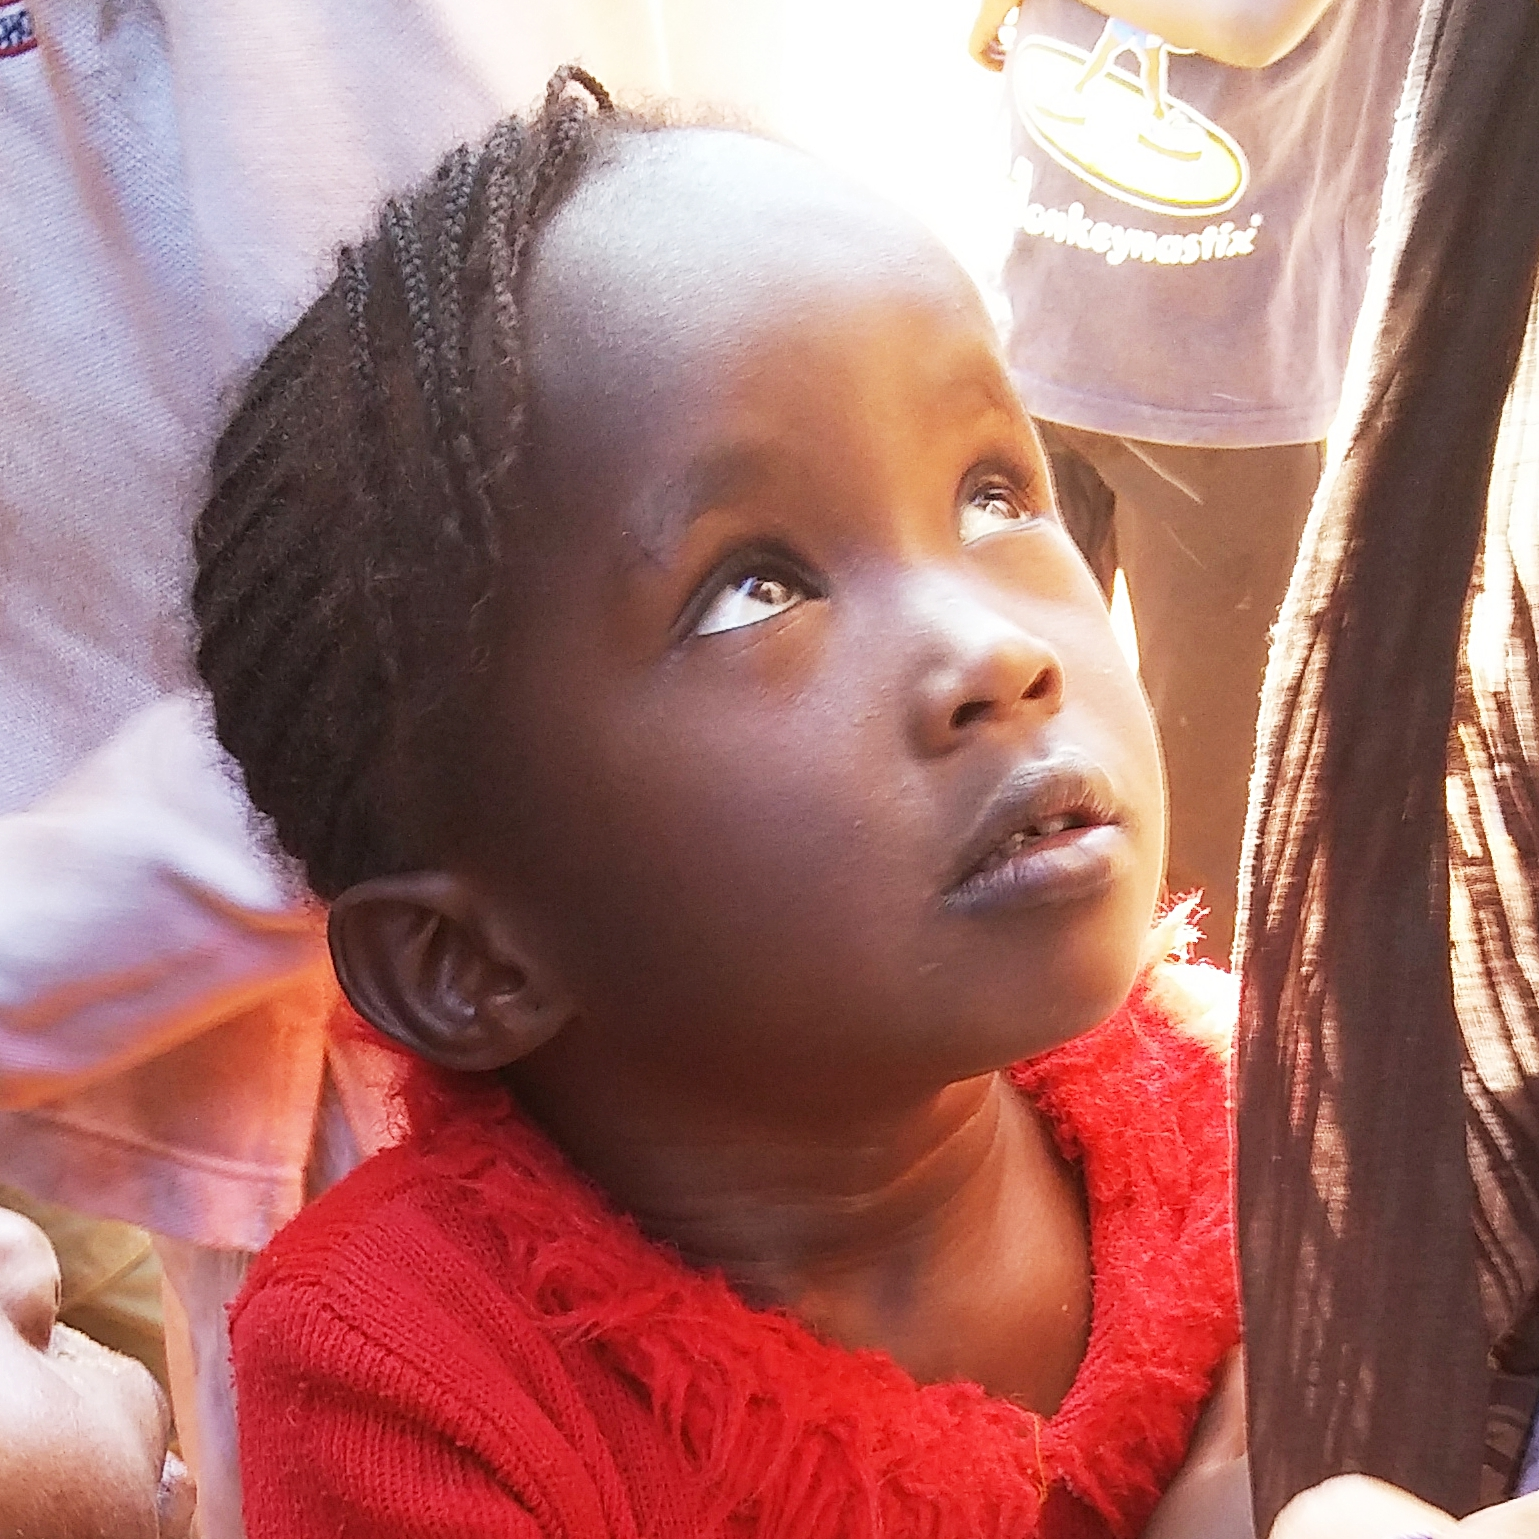 To change a nation, you must first change a generation, to change a generation, you must start with one child. - ~Bob Cook, Founder